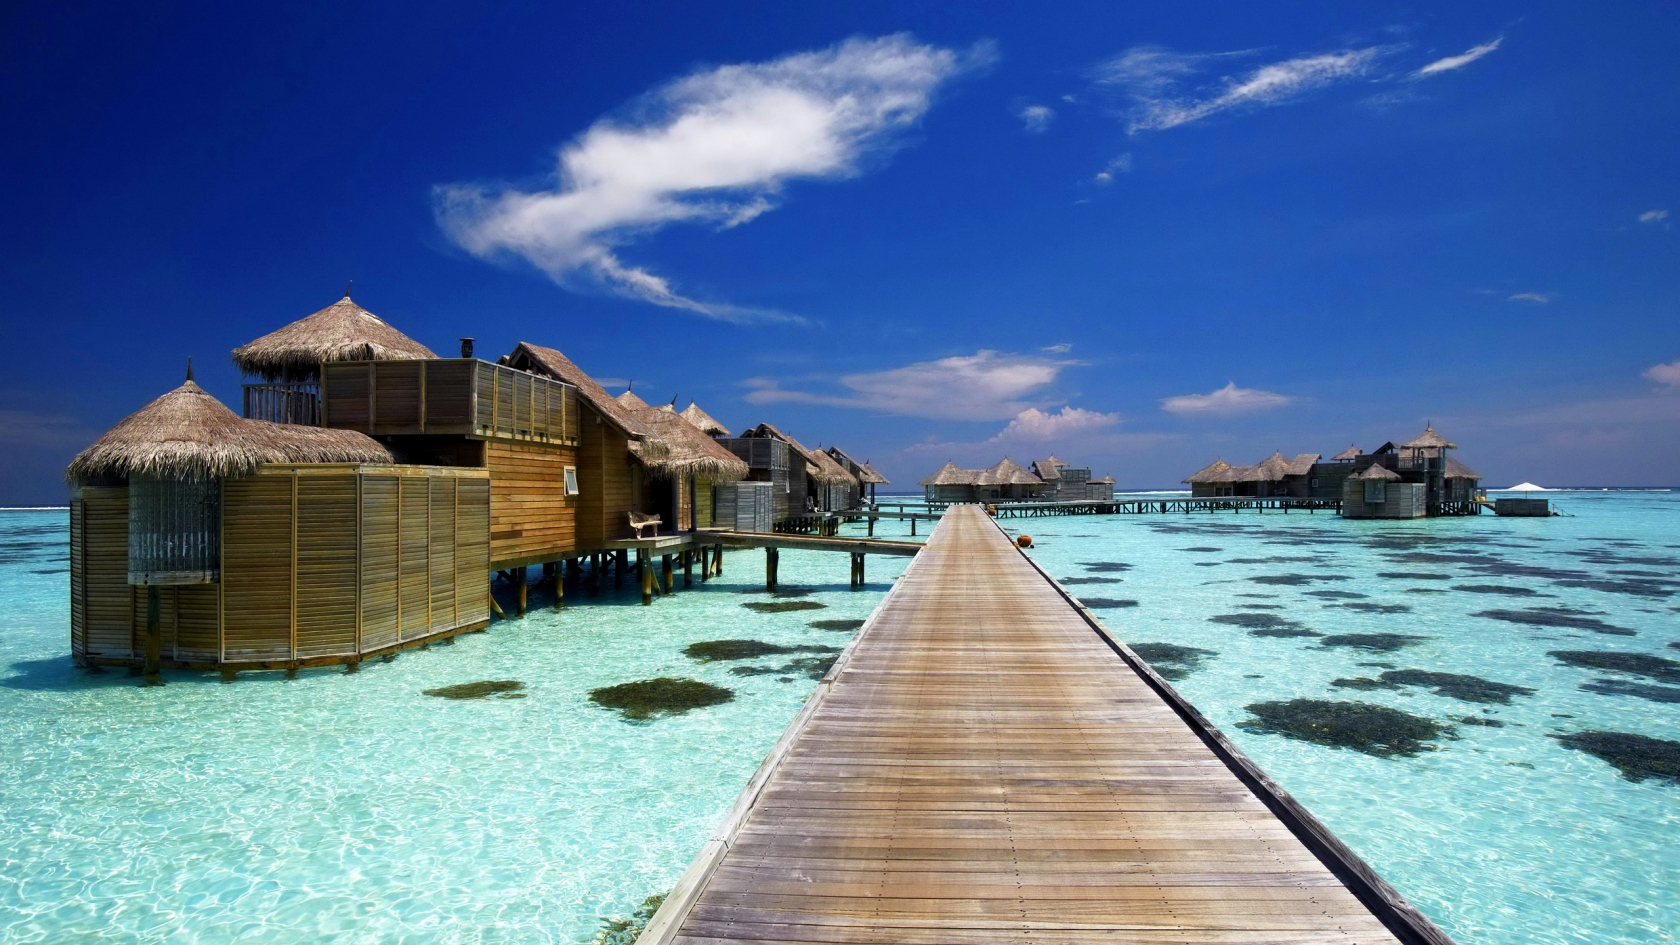 Luxury Resort in Maldives for 1680 x 945 HDTV resolution